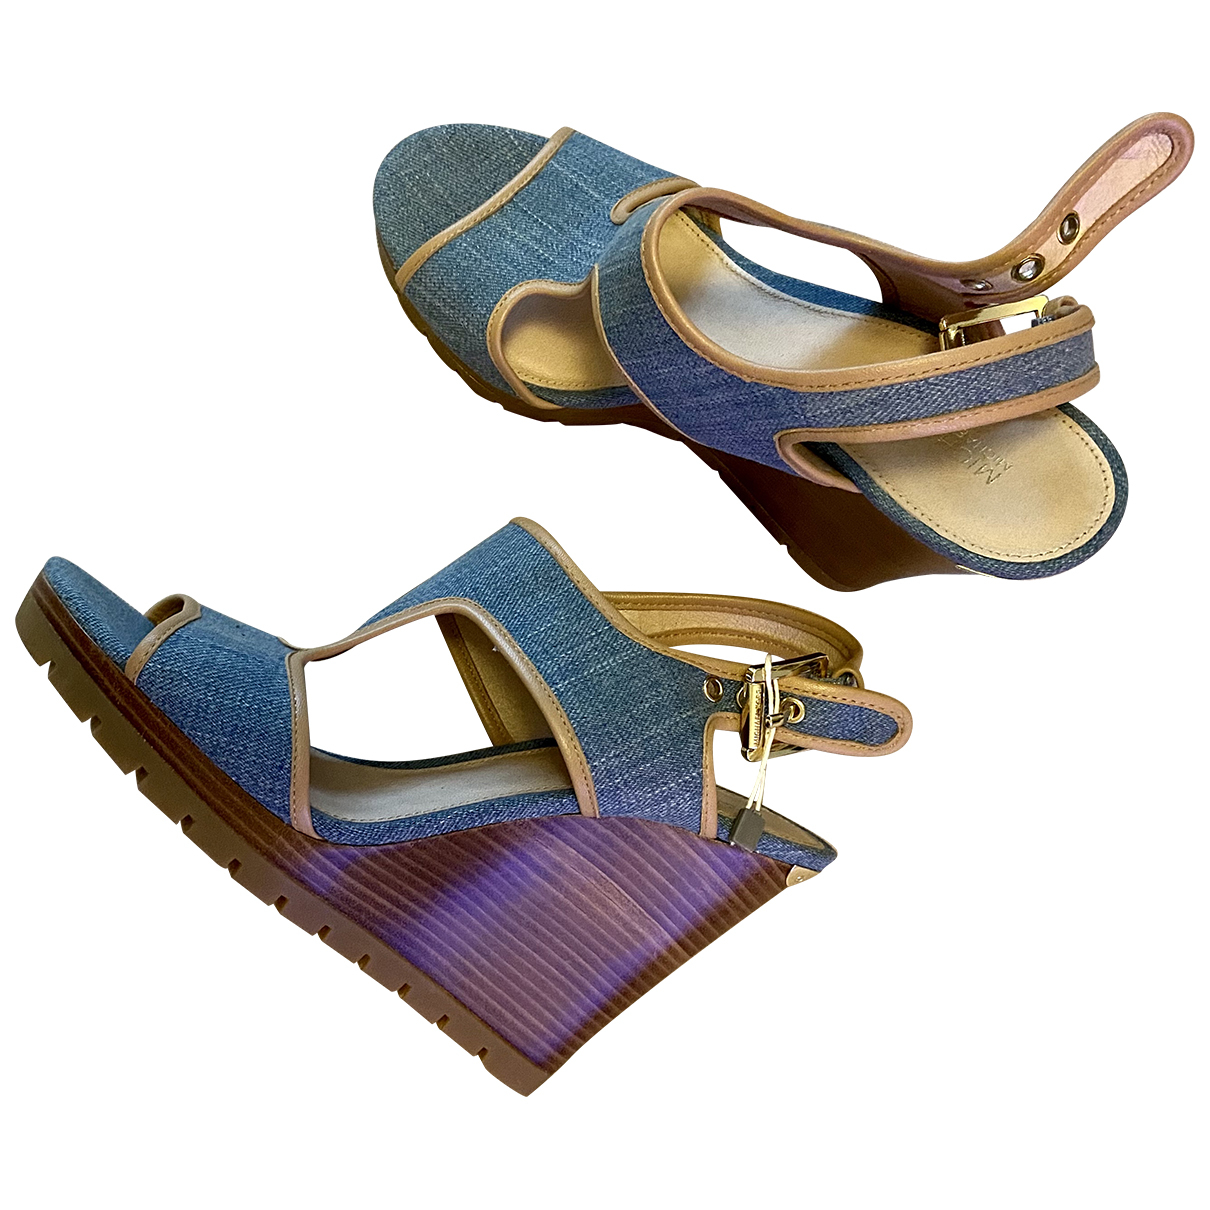 Michael Kors N Blue Cloth Sandals for Women 39.5 EU